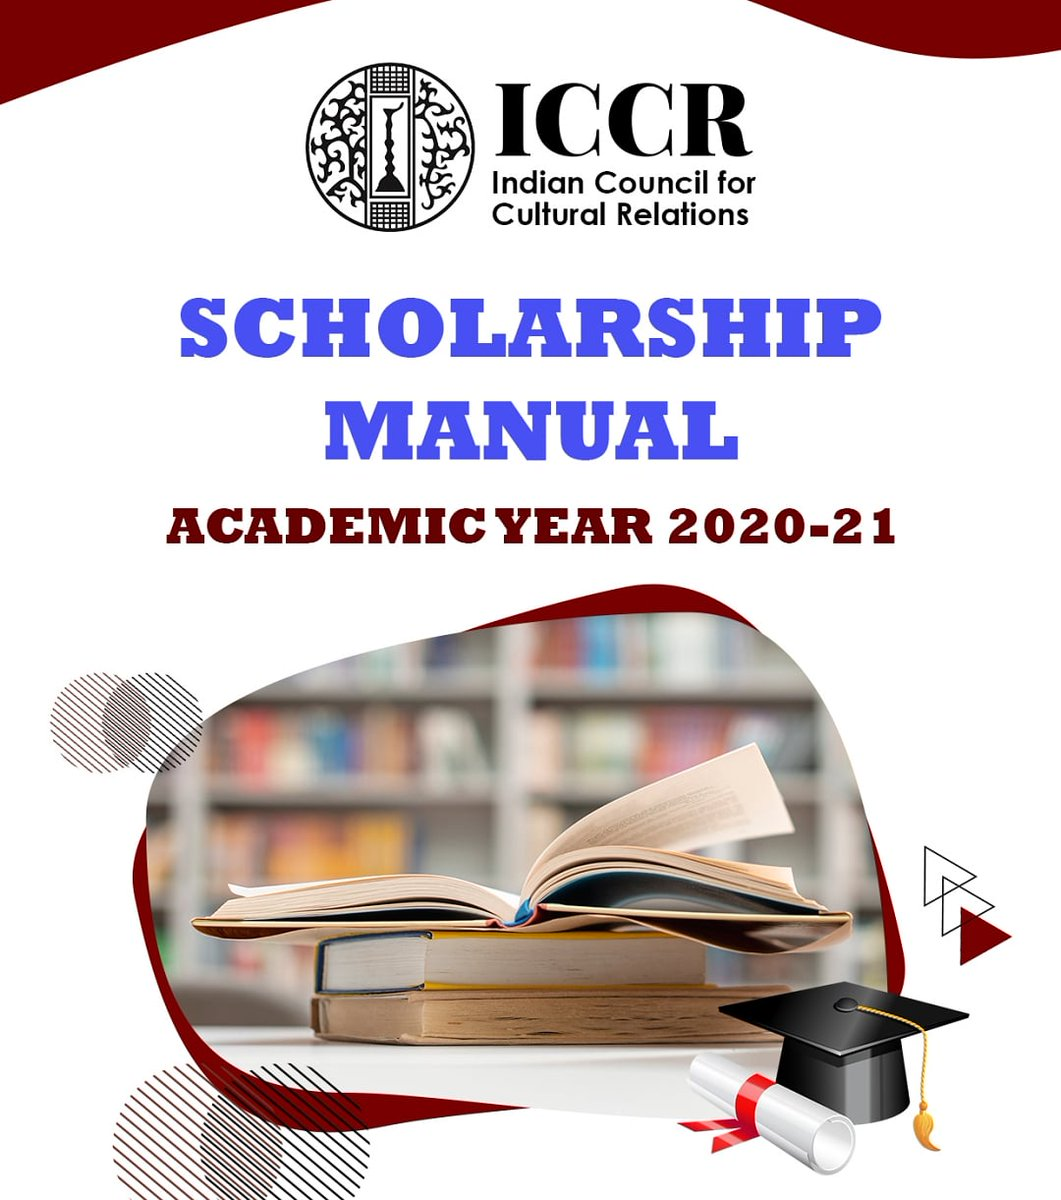 India has been a hub of education since ancient times. Its vibrant culture, diverse history and quality education attracts international students from different corners of the world. ICCR every year offers more than 3000 Scholarships in different streams.